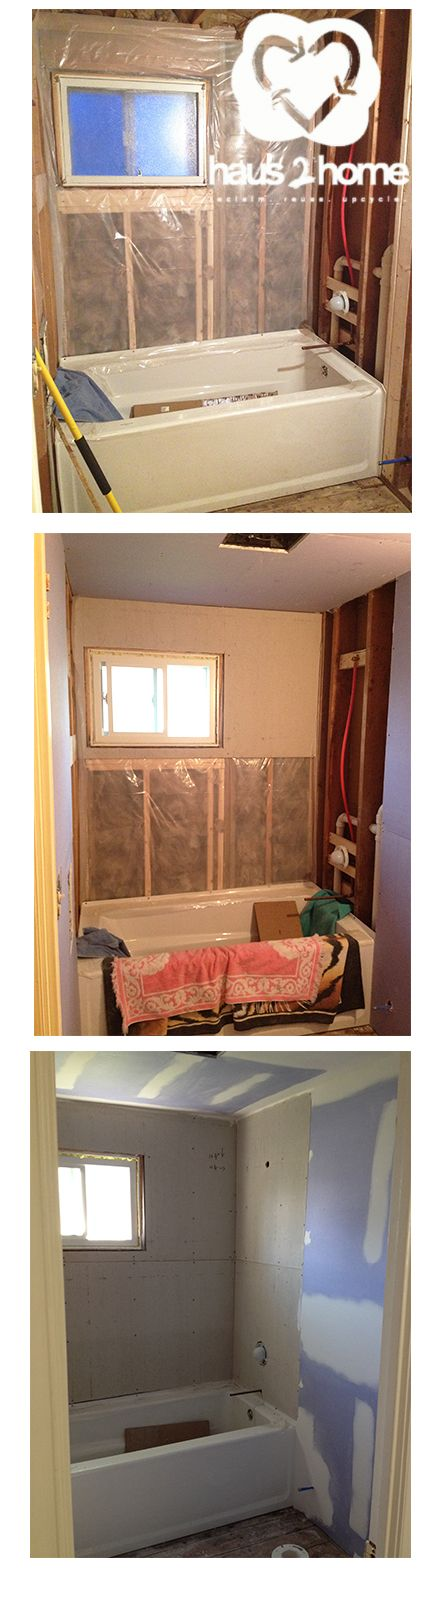 How to put your bathroom back together after ripping it apart! A step by step on how to do a DIY install water/moisture resistant walls and floors. Easy to understand description with photos of this bathroom redo! @haus2home